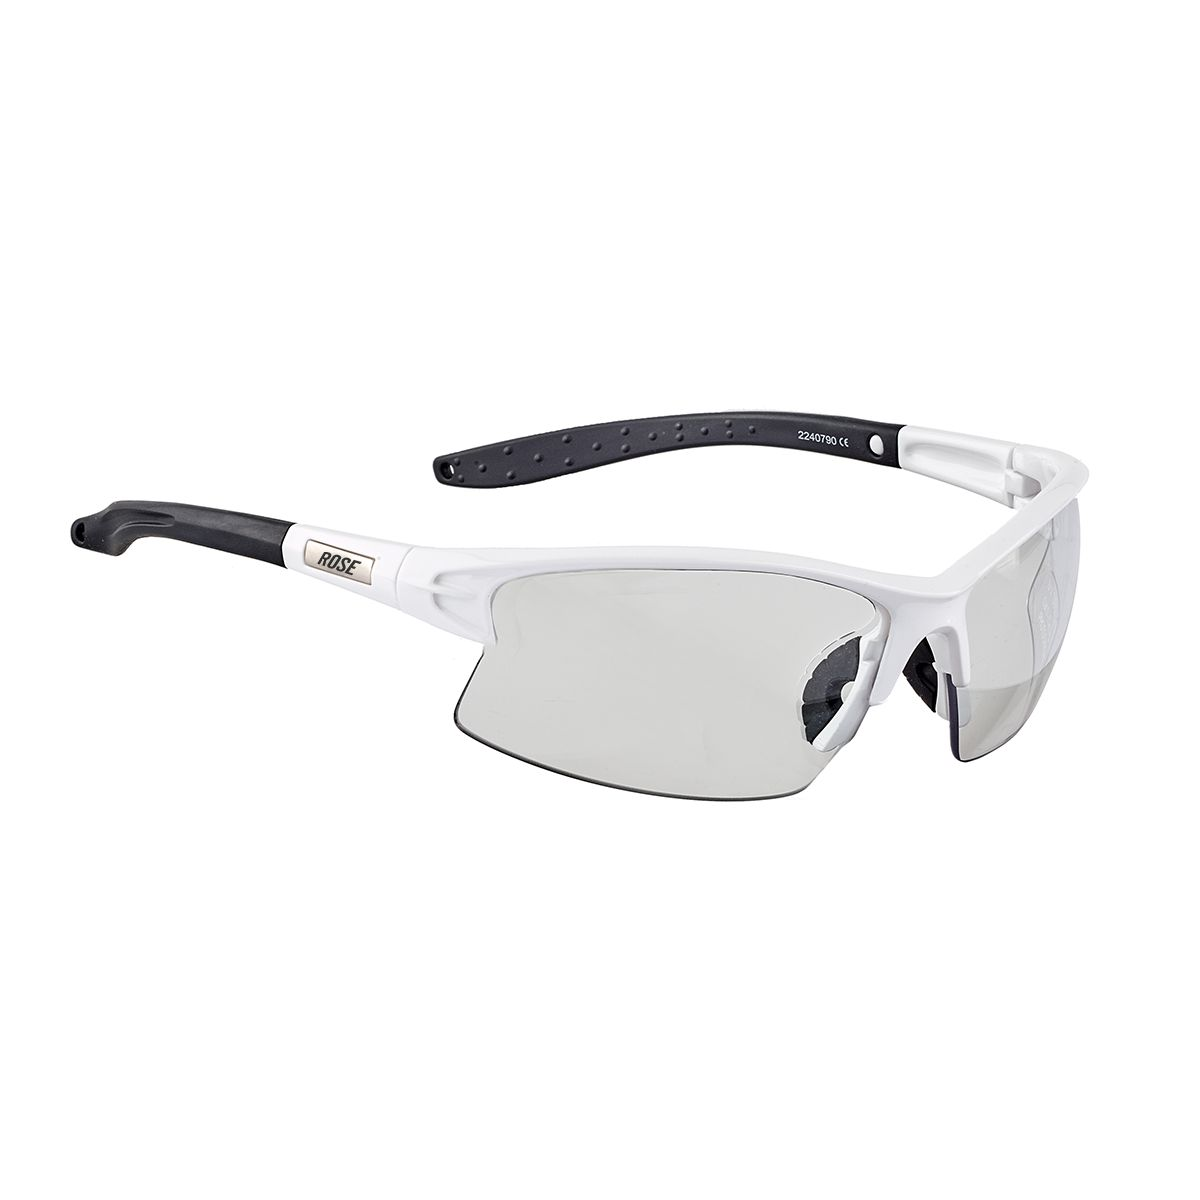 PS 08 photochromic glasses